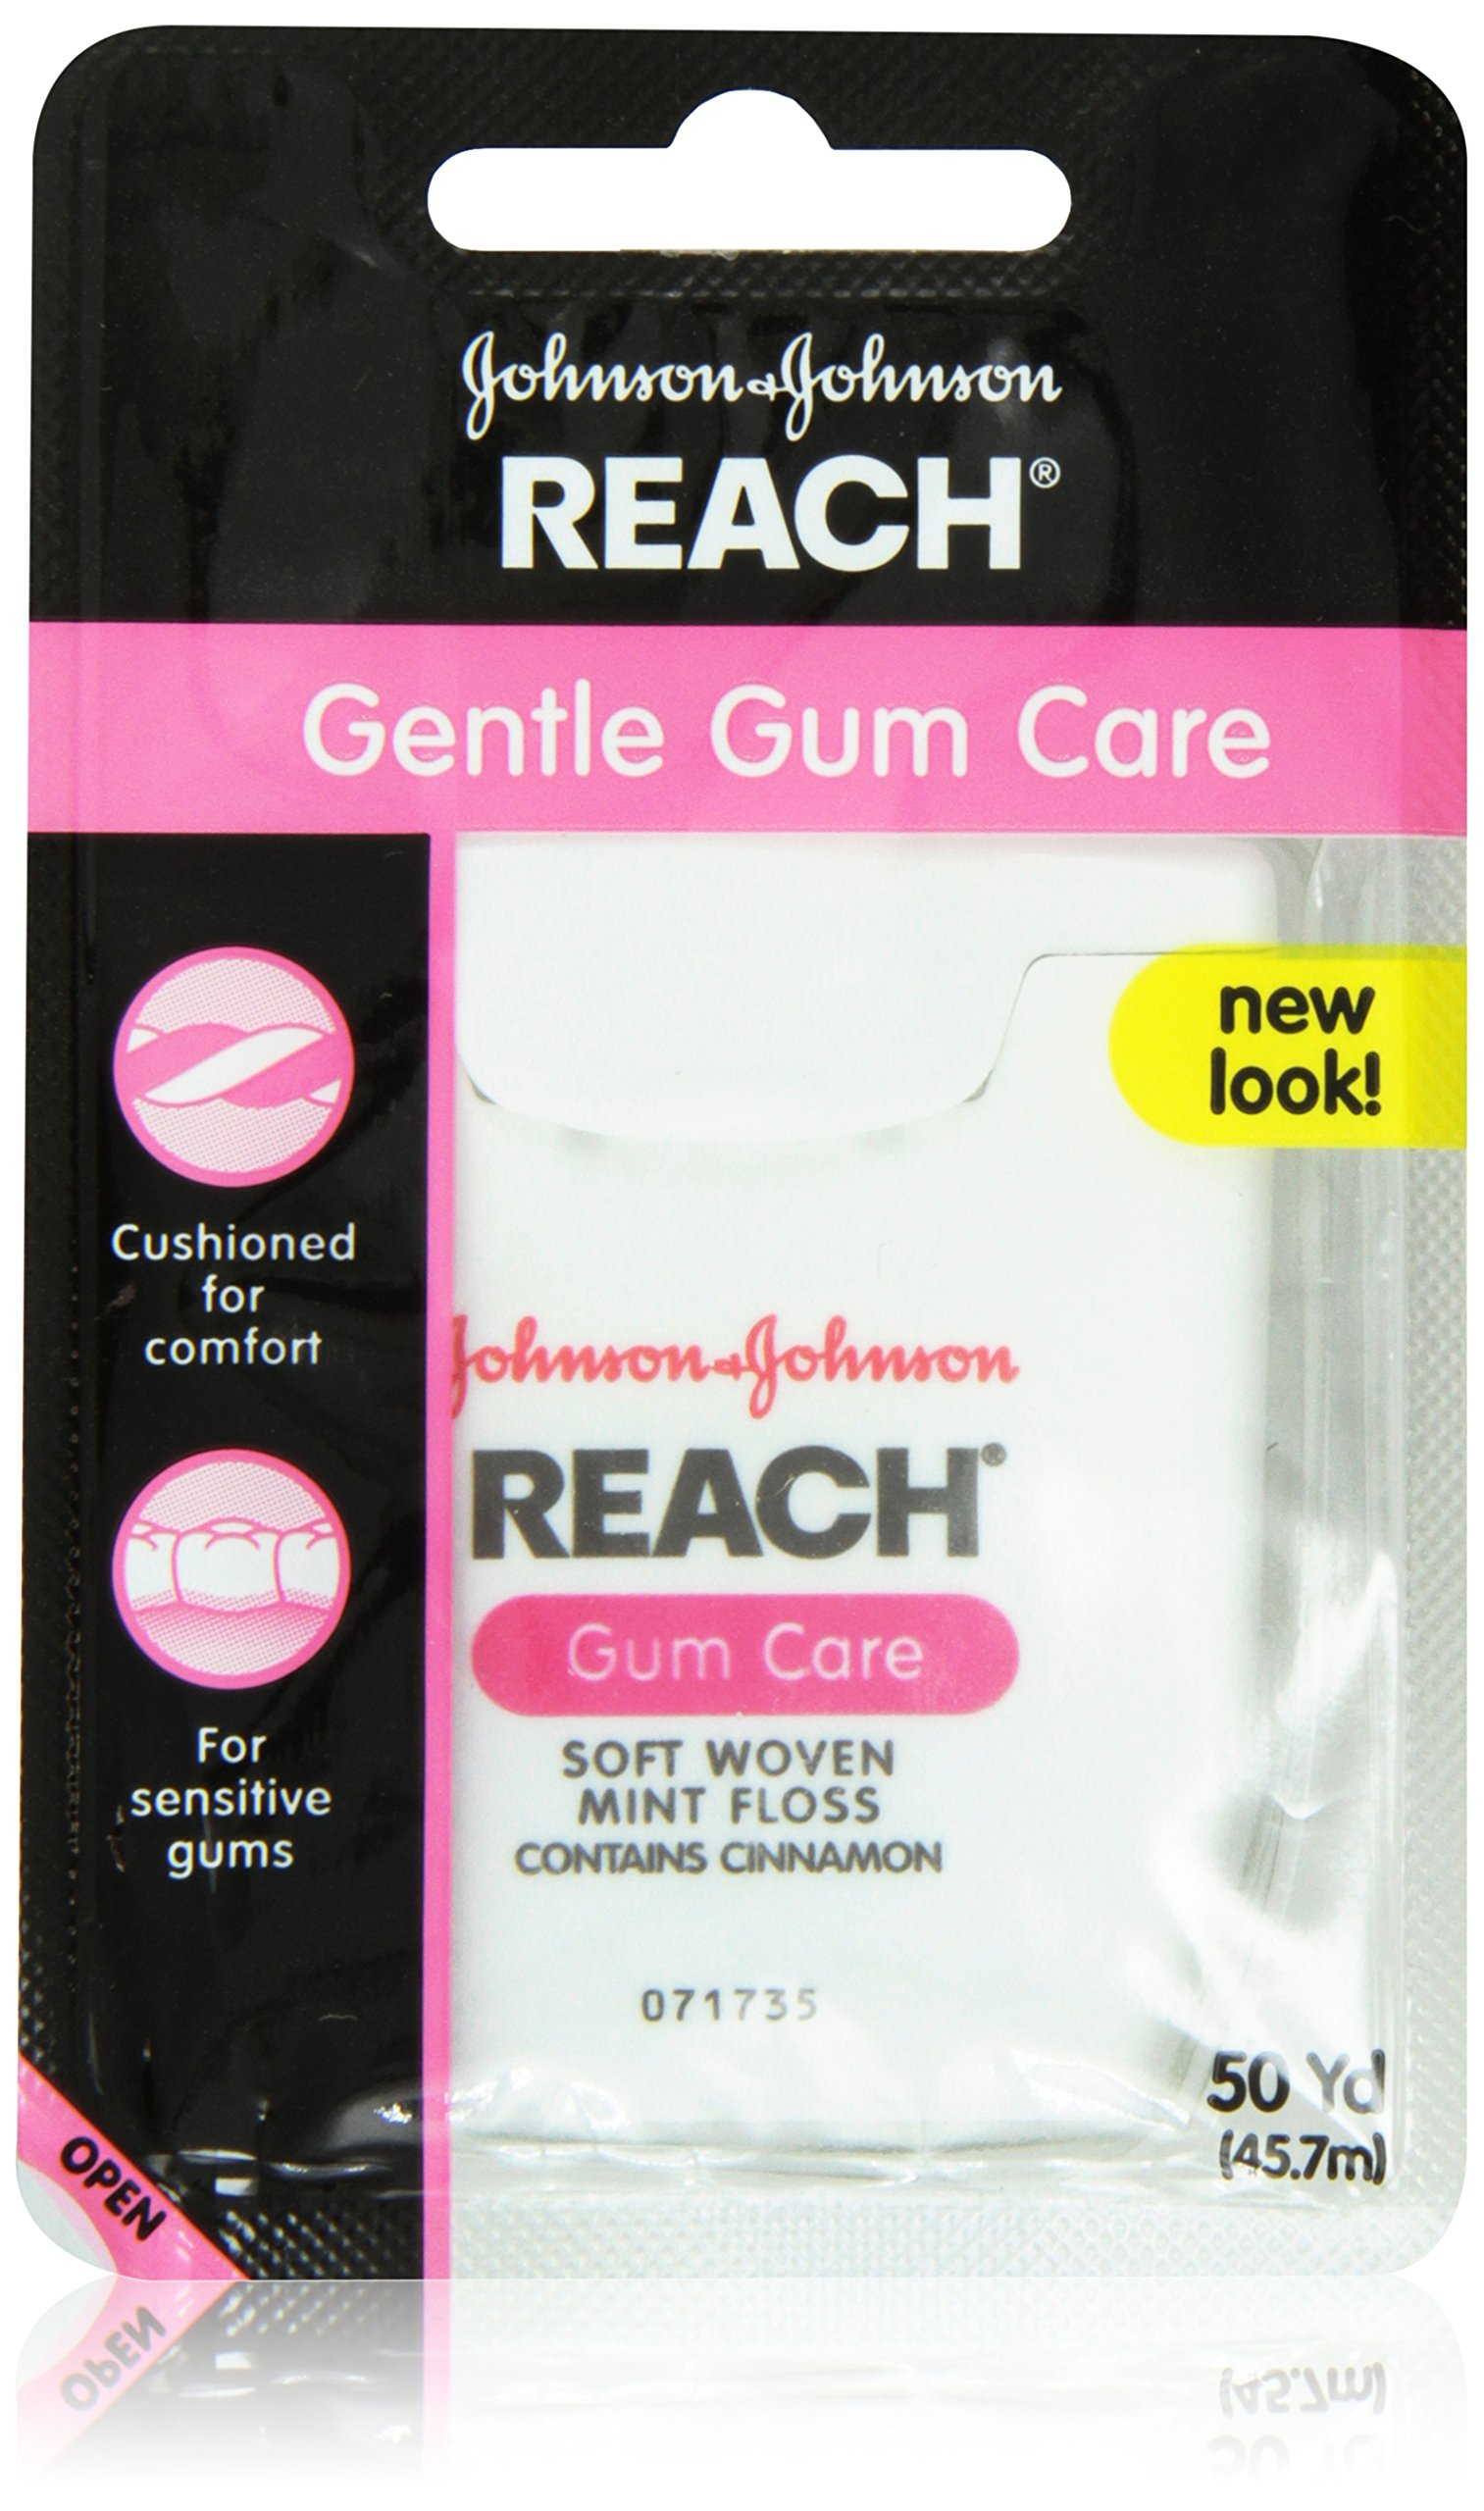 Reach Gentle Gum Care, Woven Mint Dental Floss With Hint of Cinnamon Flavor, 50 Yard Dispensers (Pack of 12)